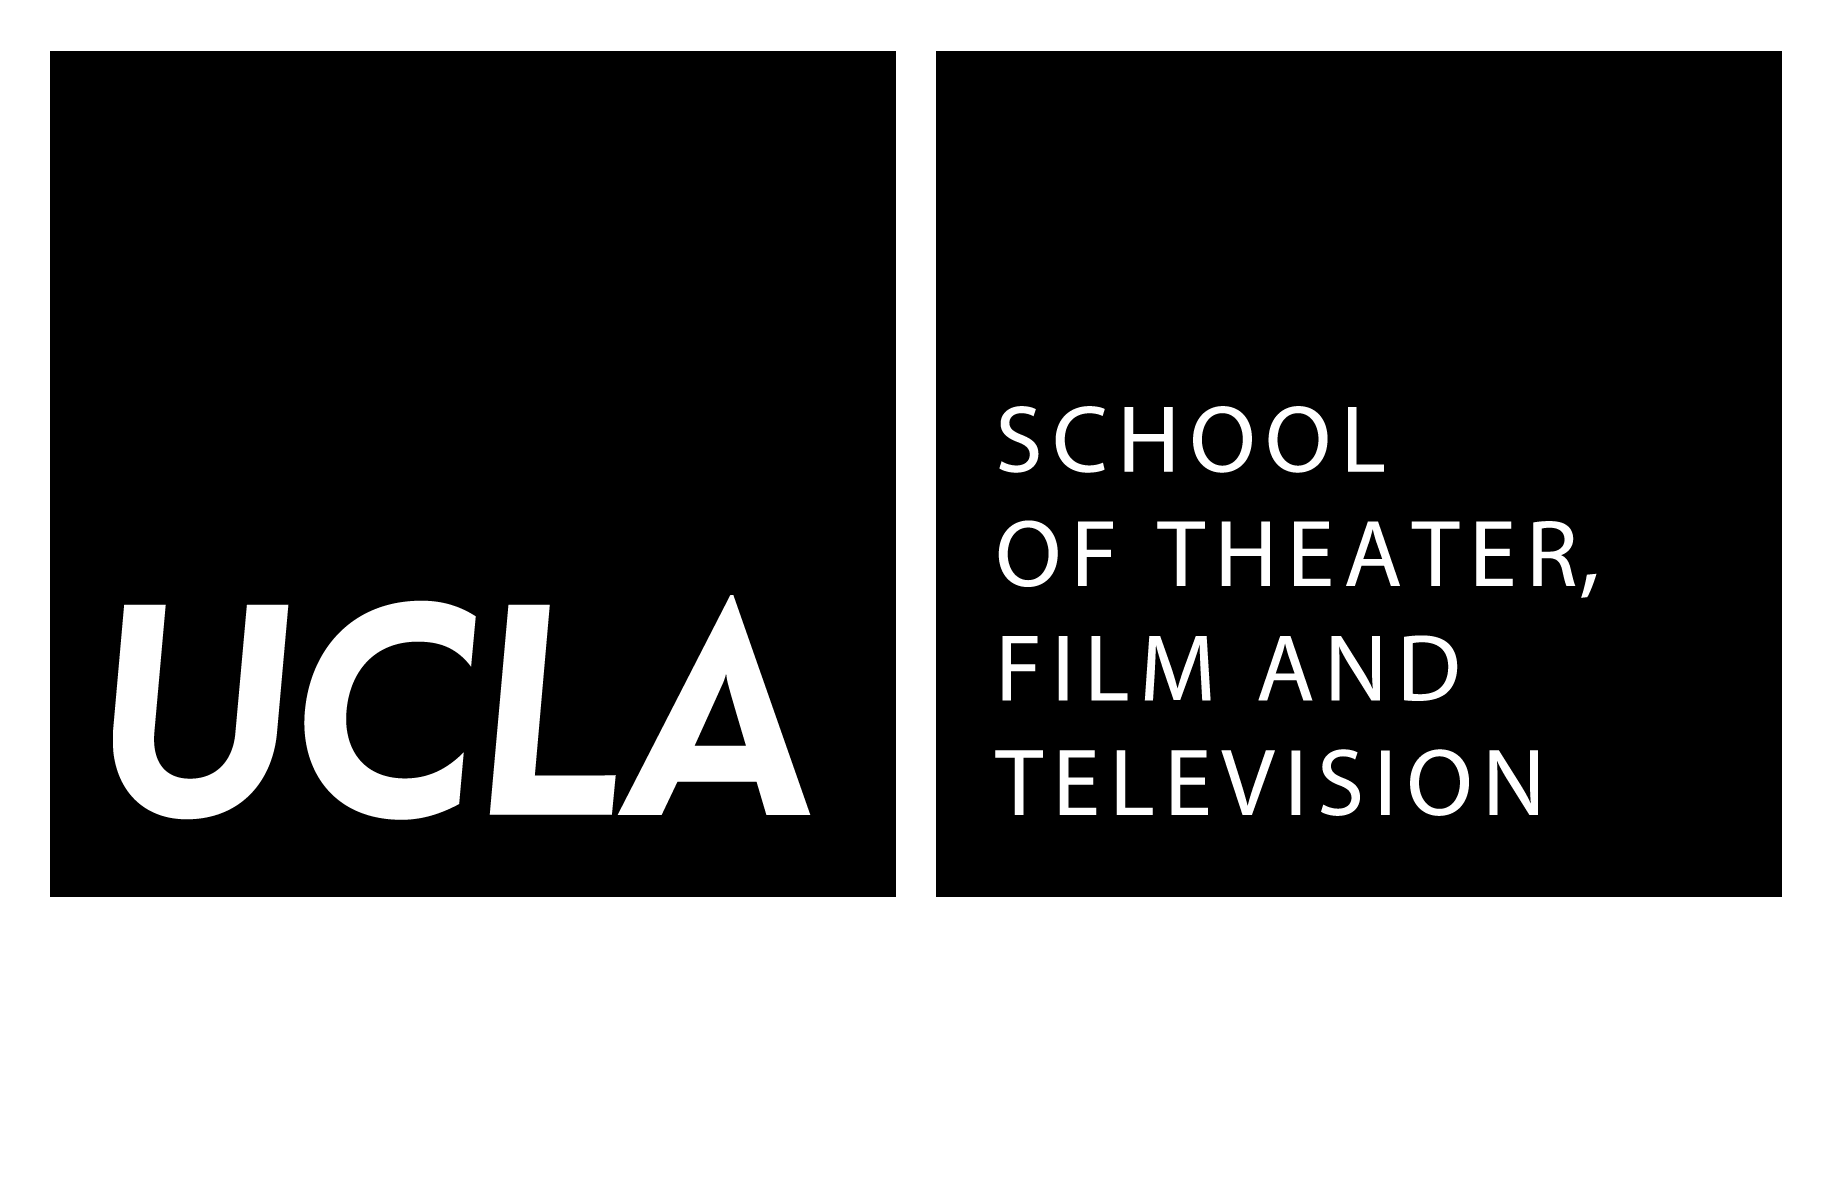 THEATER Tour for Prospective Students - Jul 1